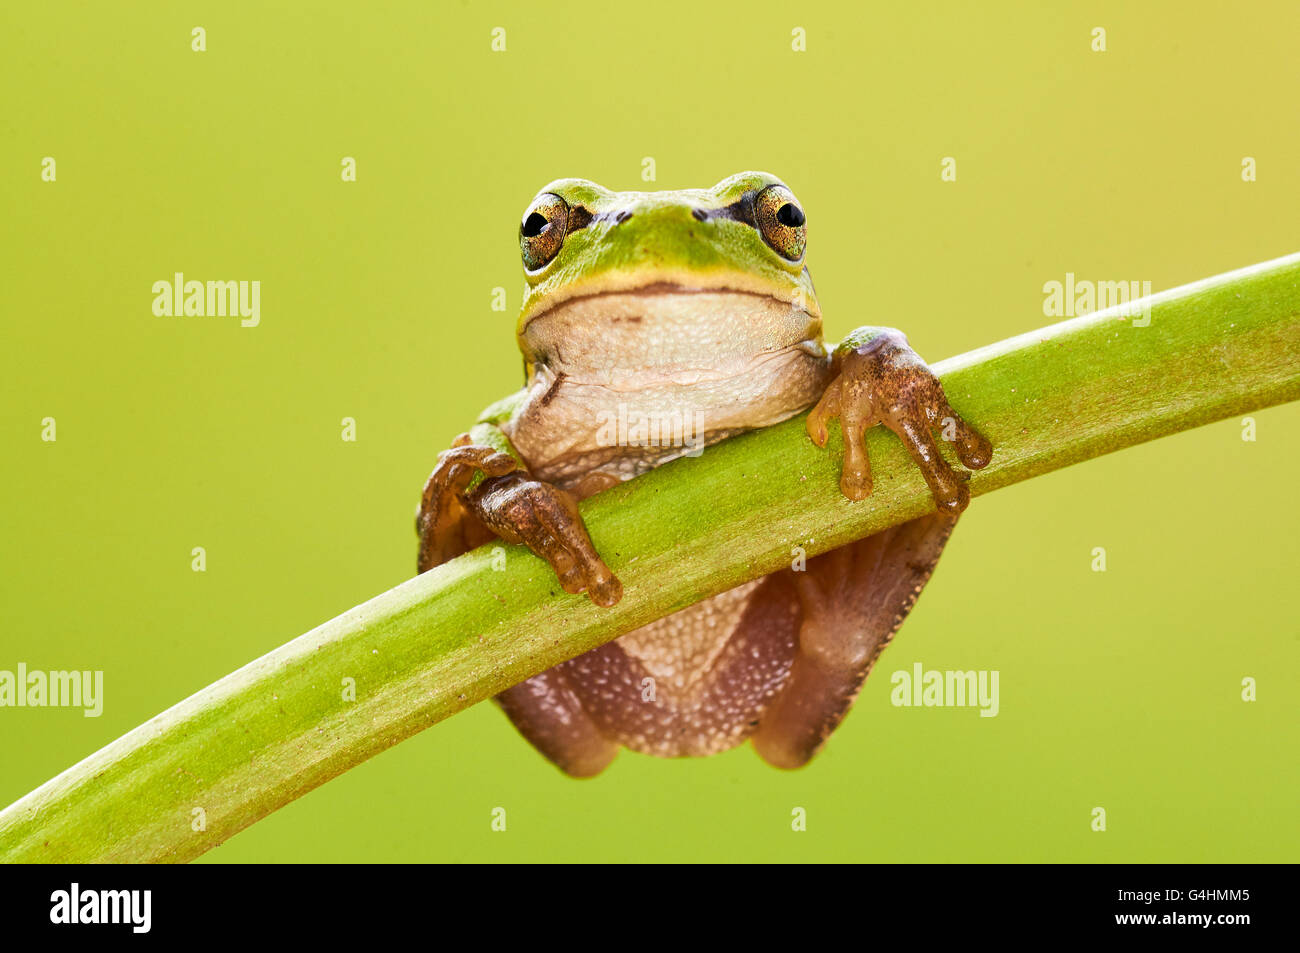 Hila arborea, european tree frog is a small, green tree frog Stock Photo